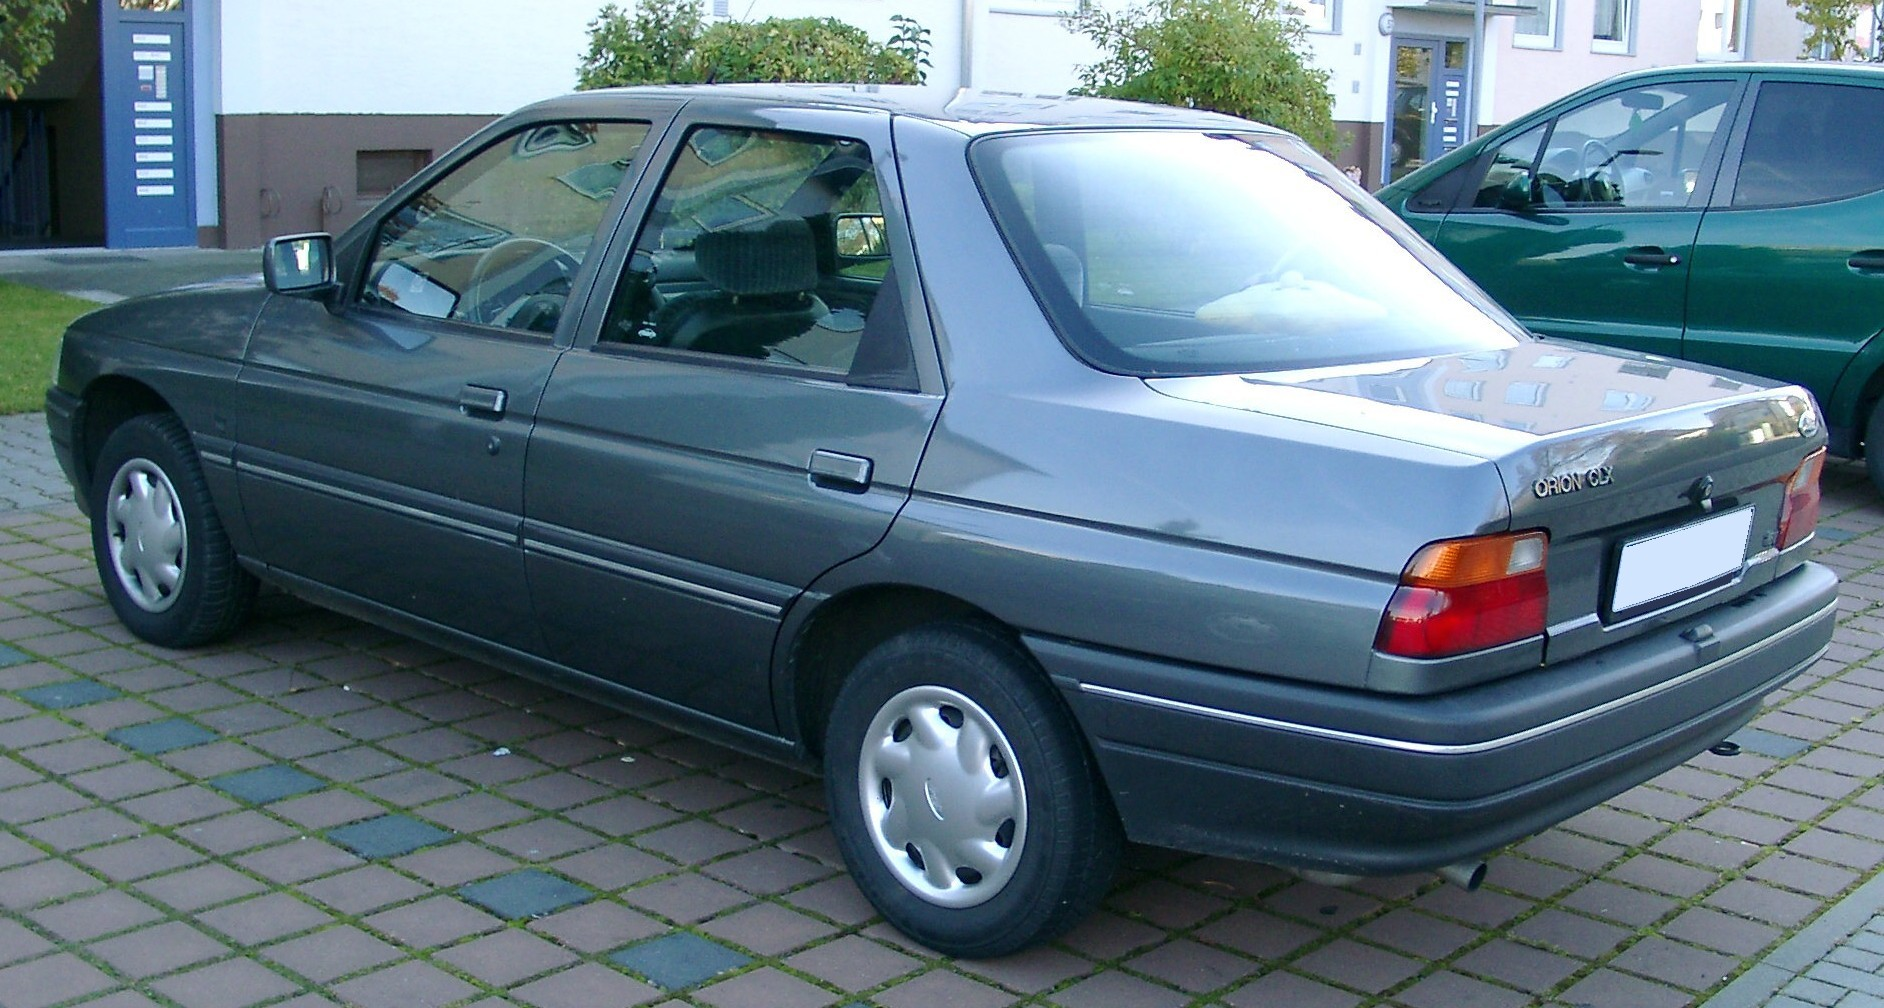 Ford Orion 1994 photo - 9